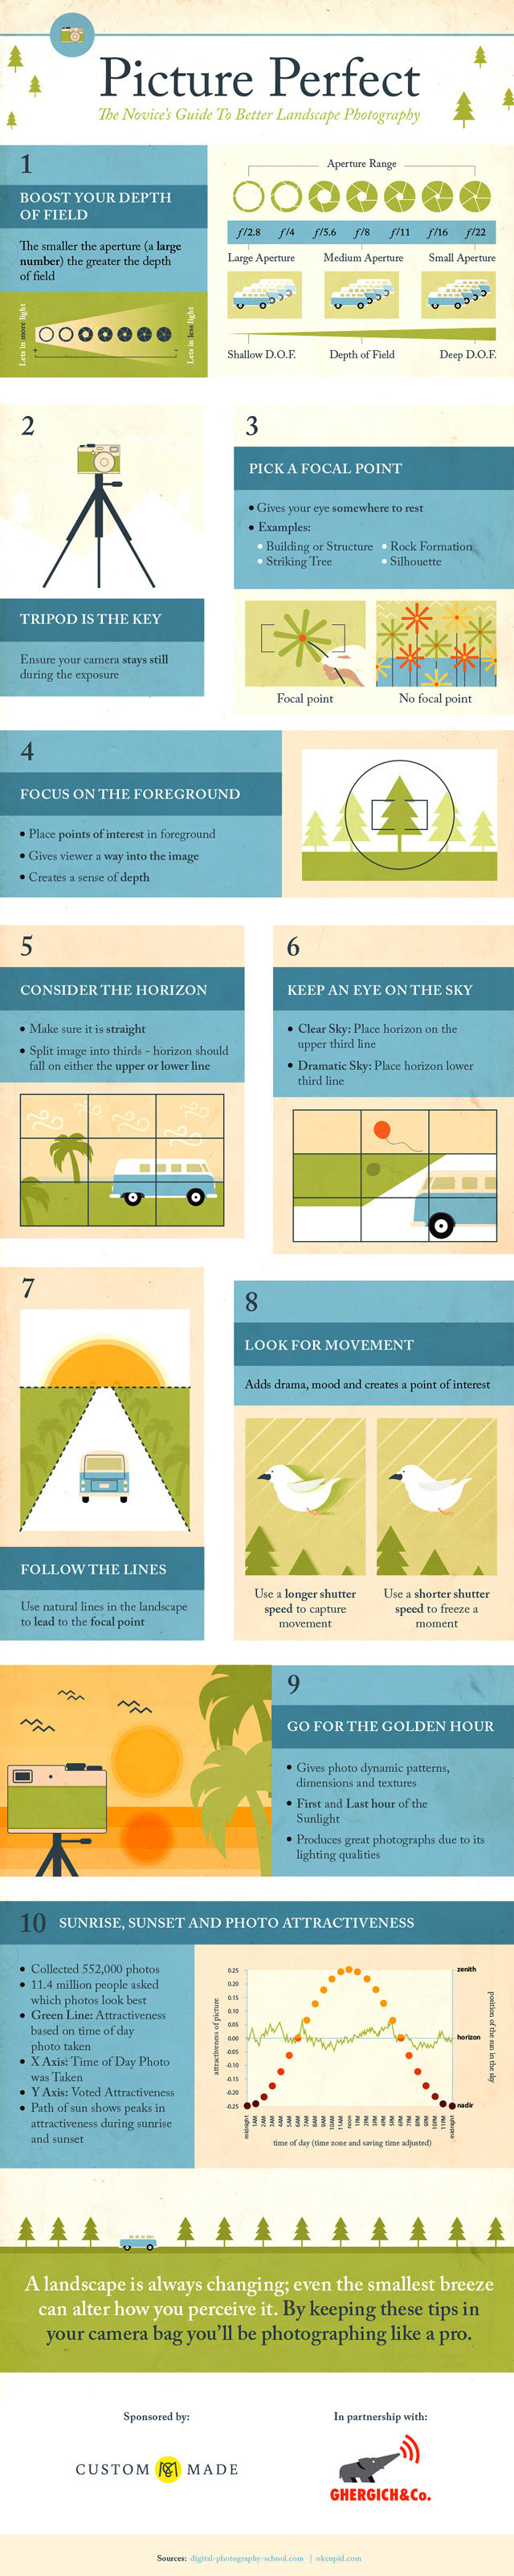 Infographic: Picture Perfect: The Novice's Guide to Landscape Photography